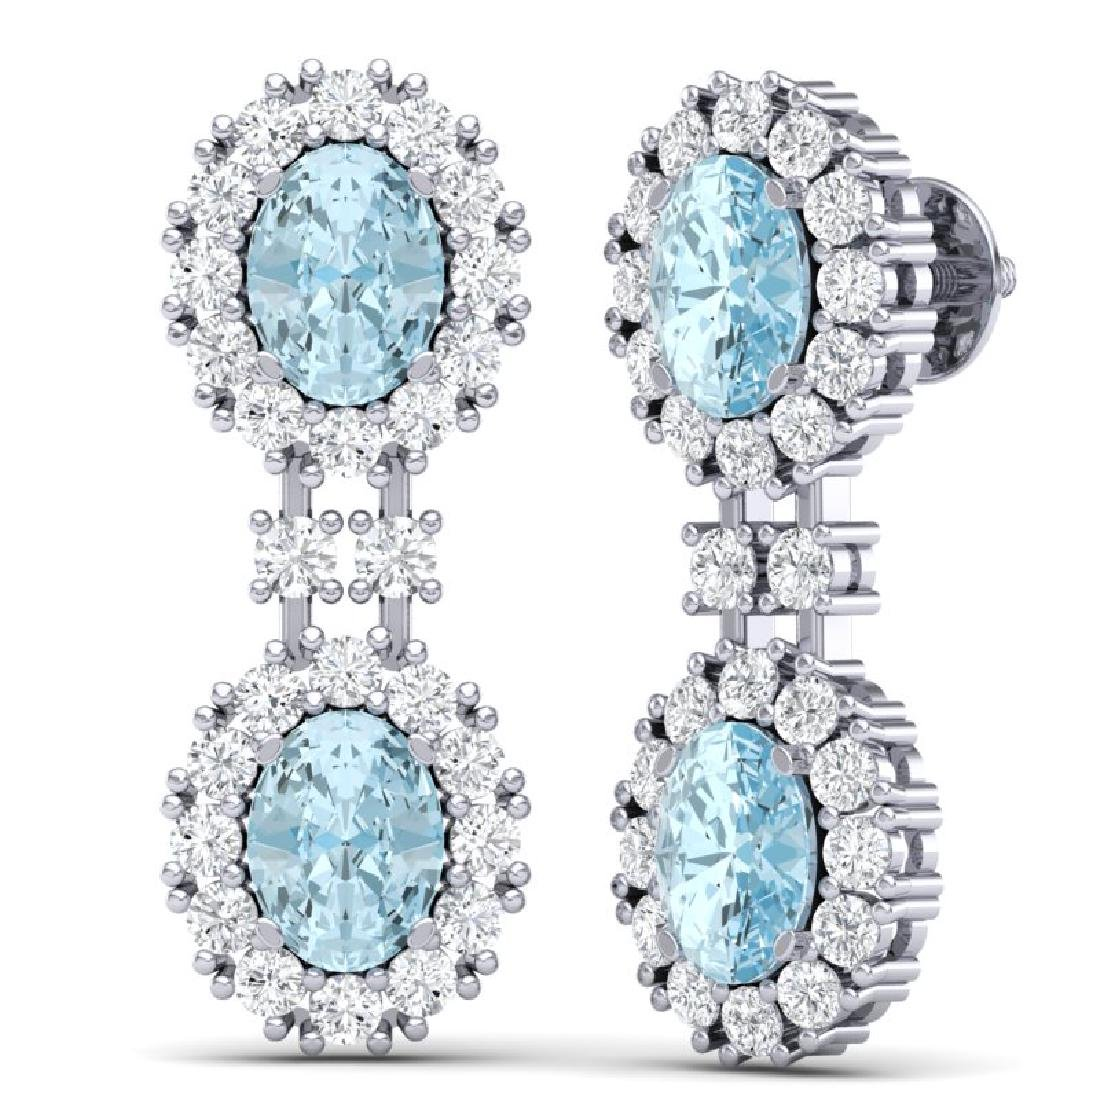 8.8 CTW Royalty Sky Topaz & VS Diamond Earrings 18K - 3